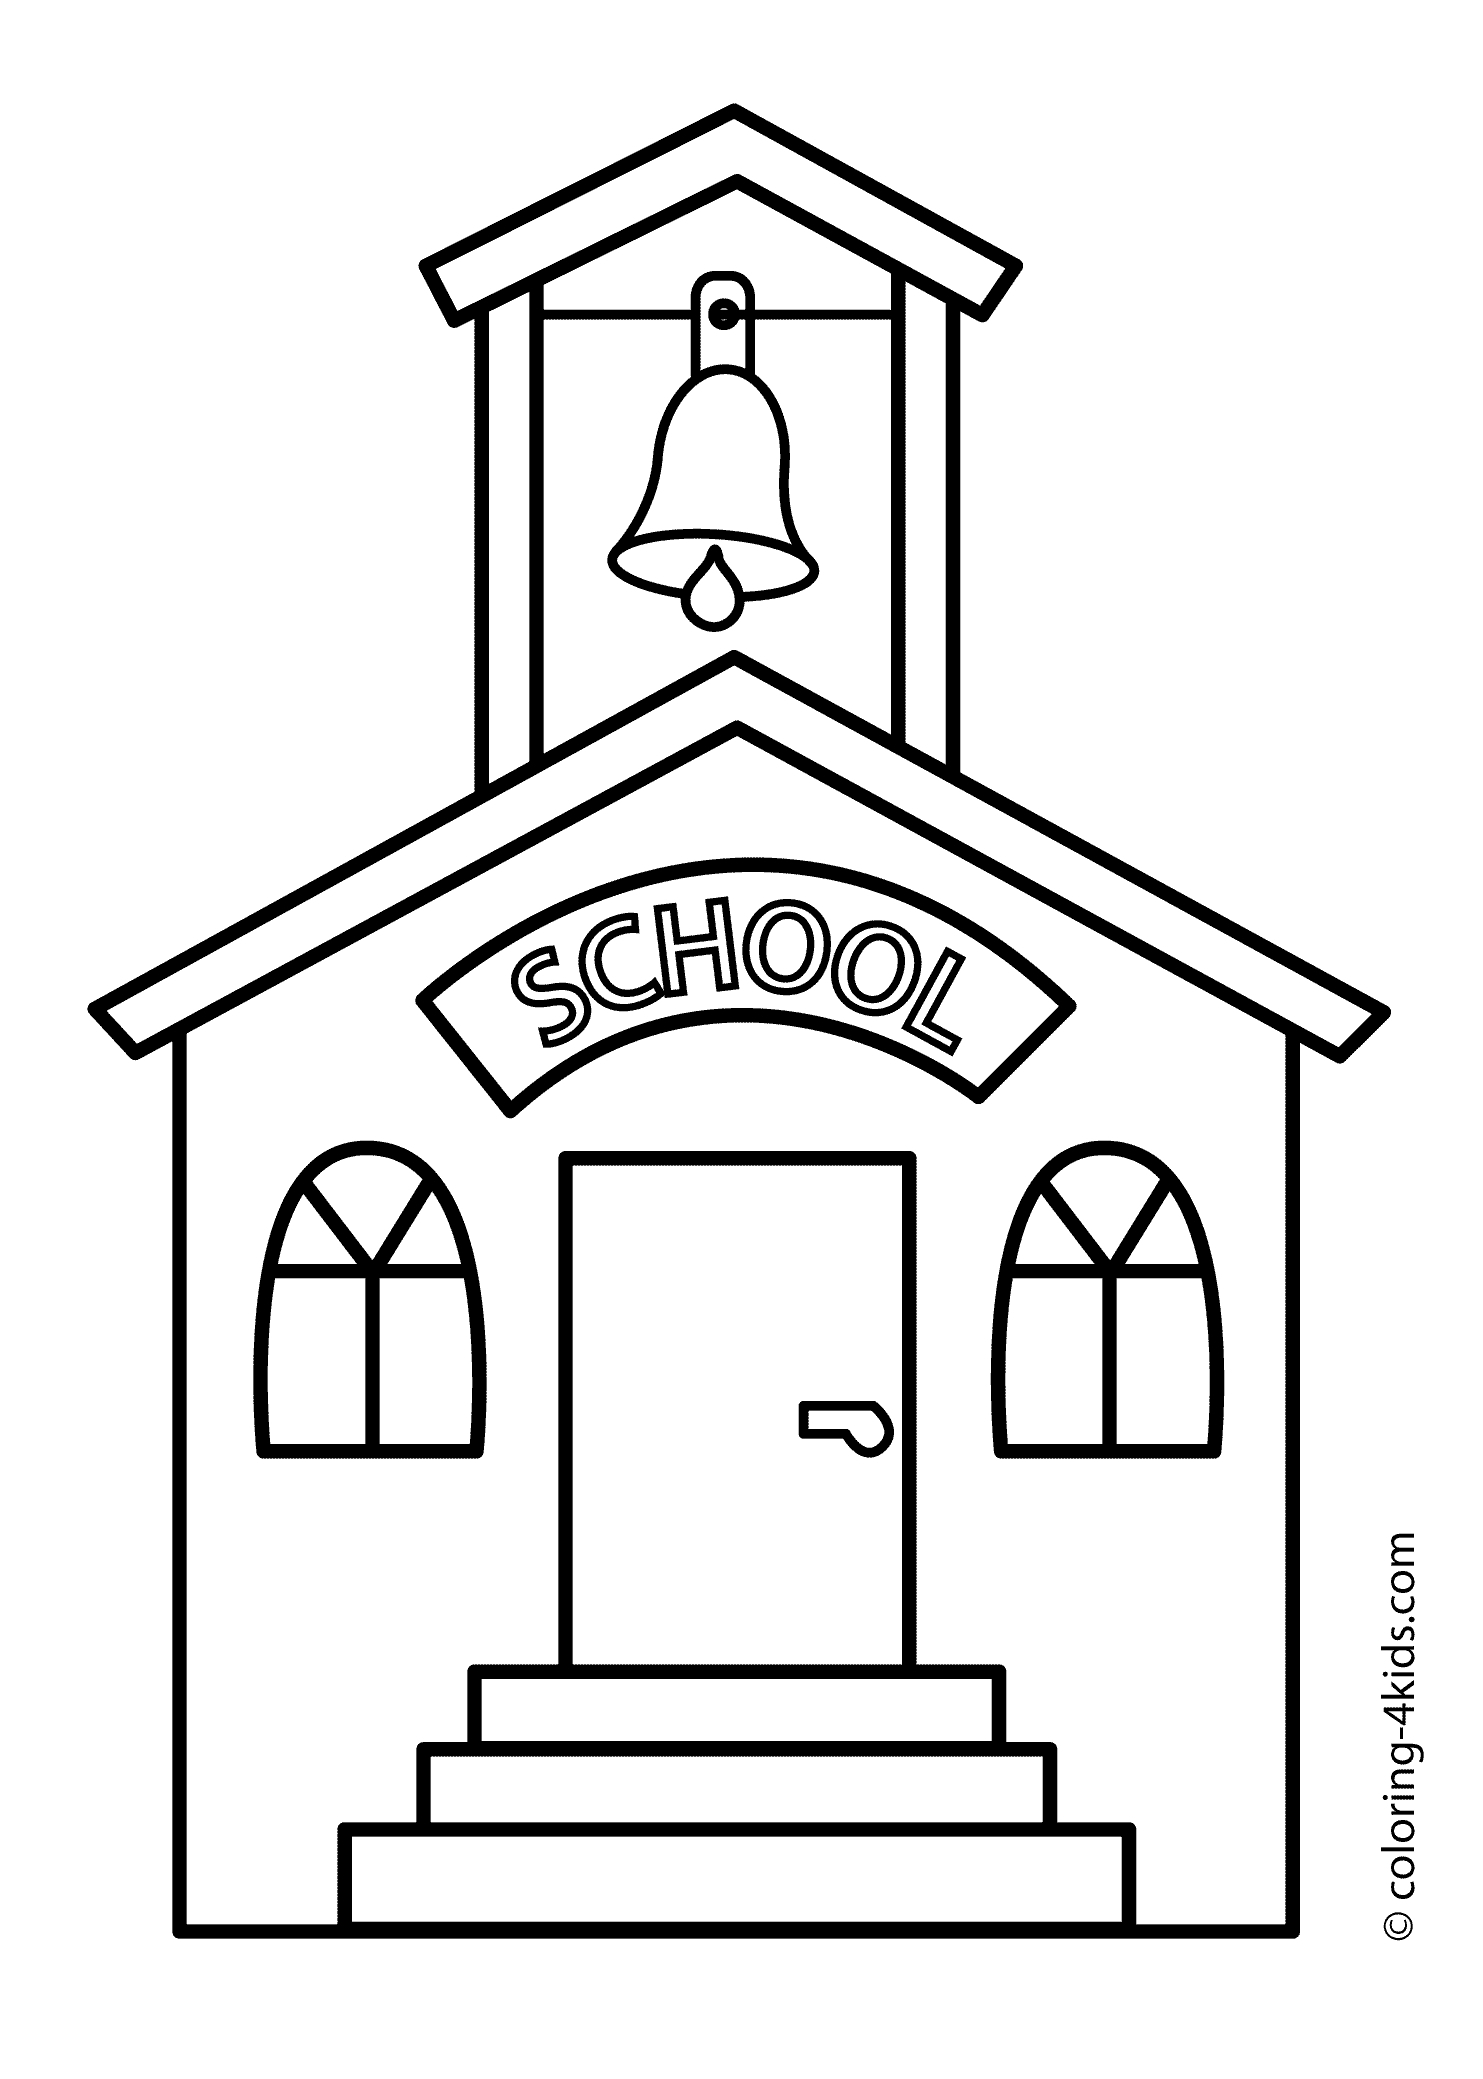 School House Coloring Page Download Of Fresh First Day School Coloring Sheets Free Printable Pages Kids Printable